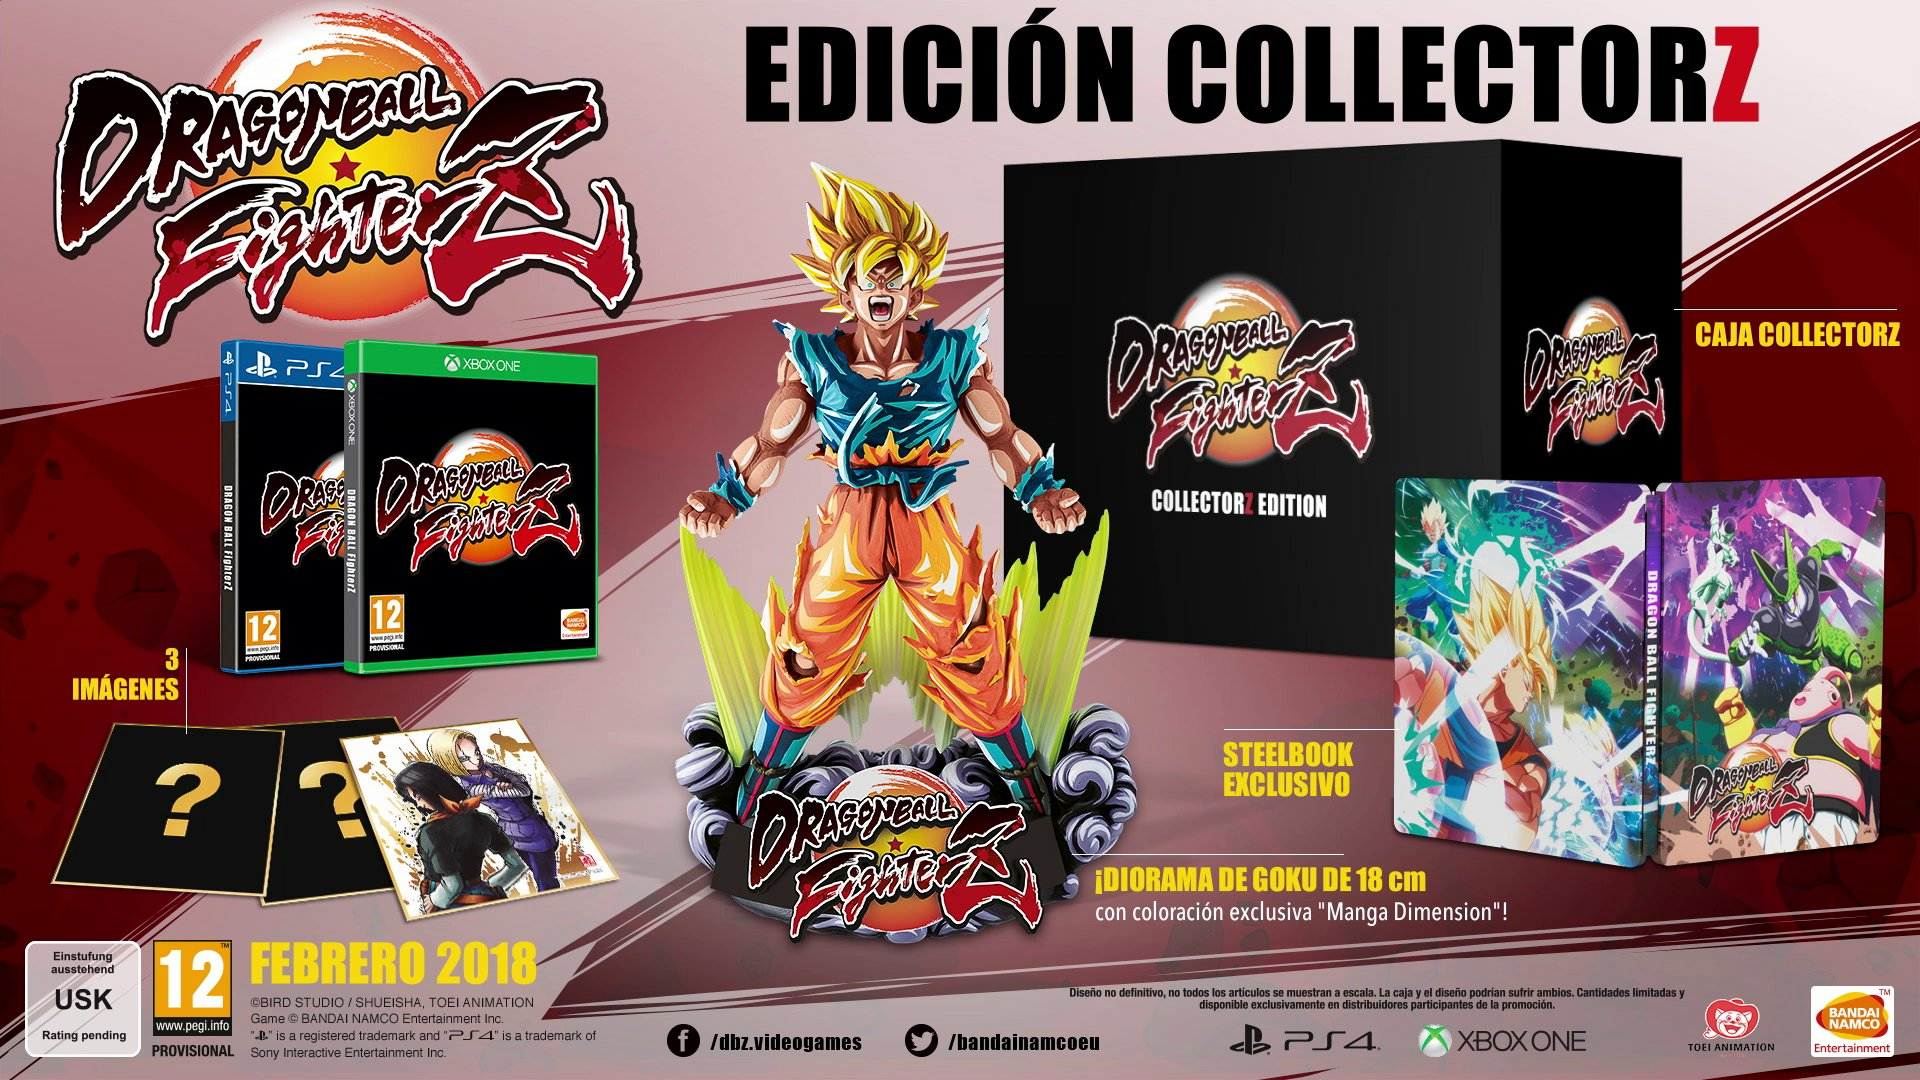 http://generacionxbox.com/wp-content/uploads/2017/08/dragon-ball-fighter-coleccionista-generacion-xbox.jpg